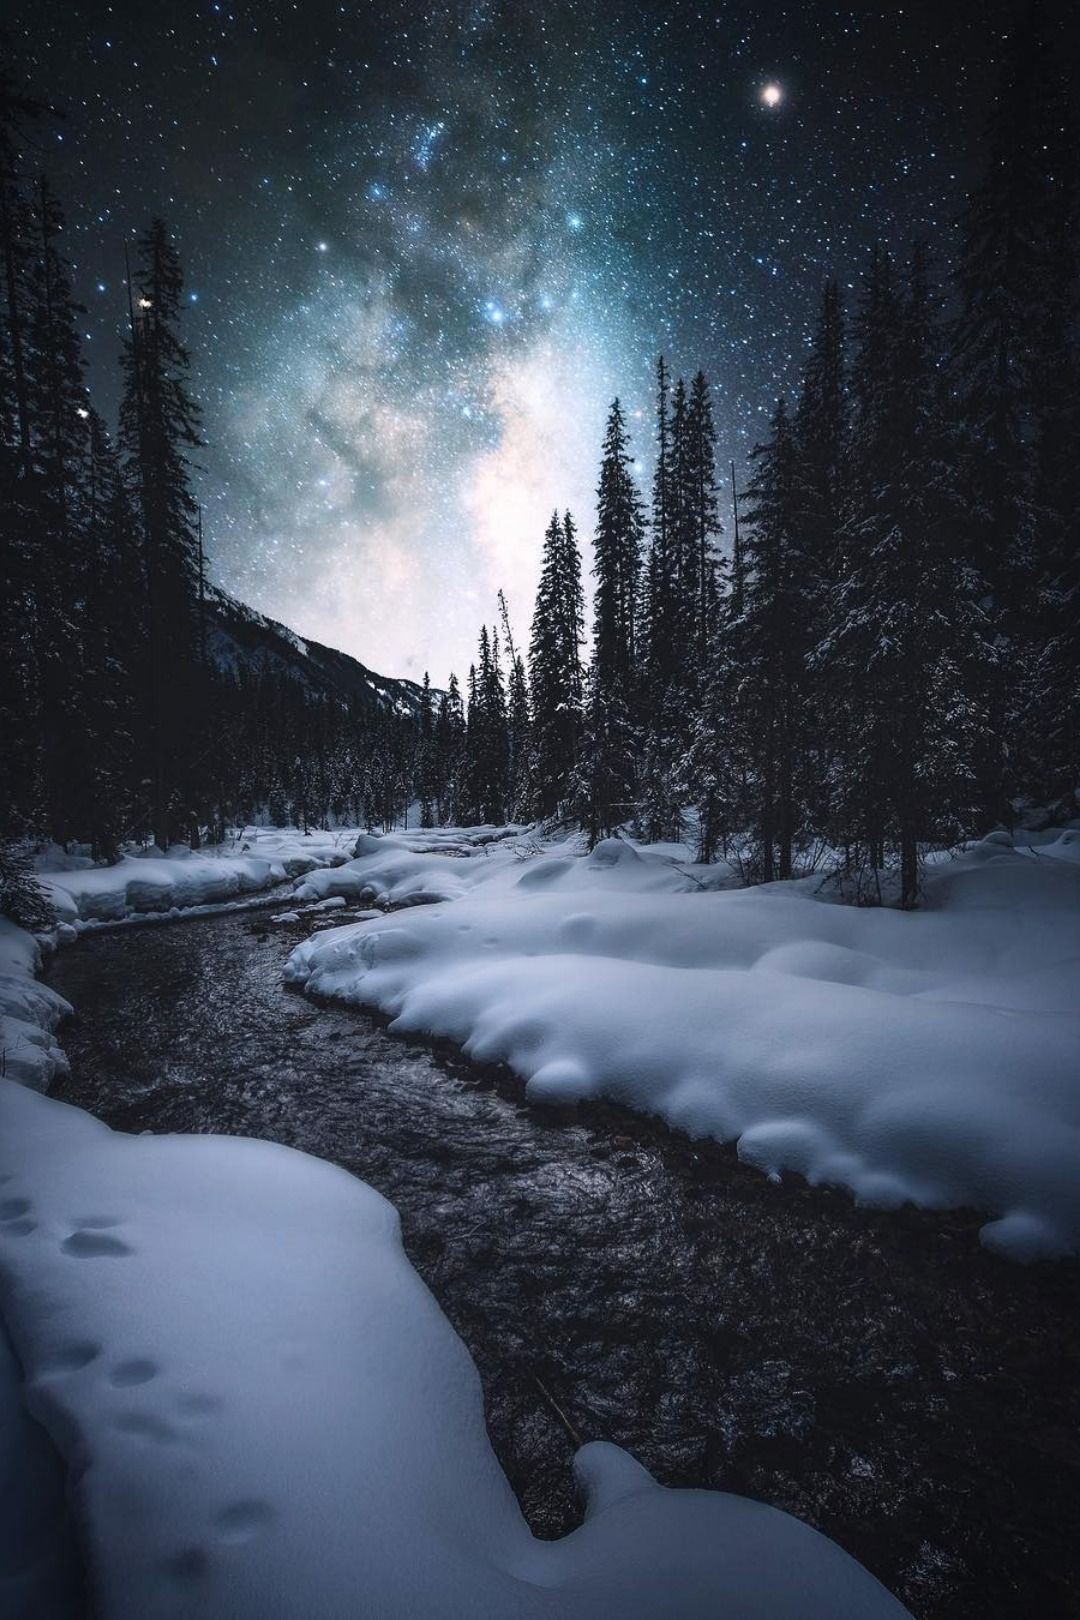 A Comprehensive Overview On Home Decoration In 2020 Winter Scenery Night Landscape Winter Landscape